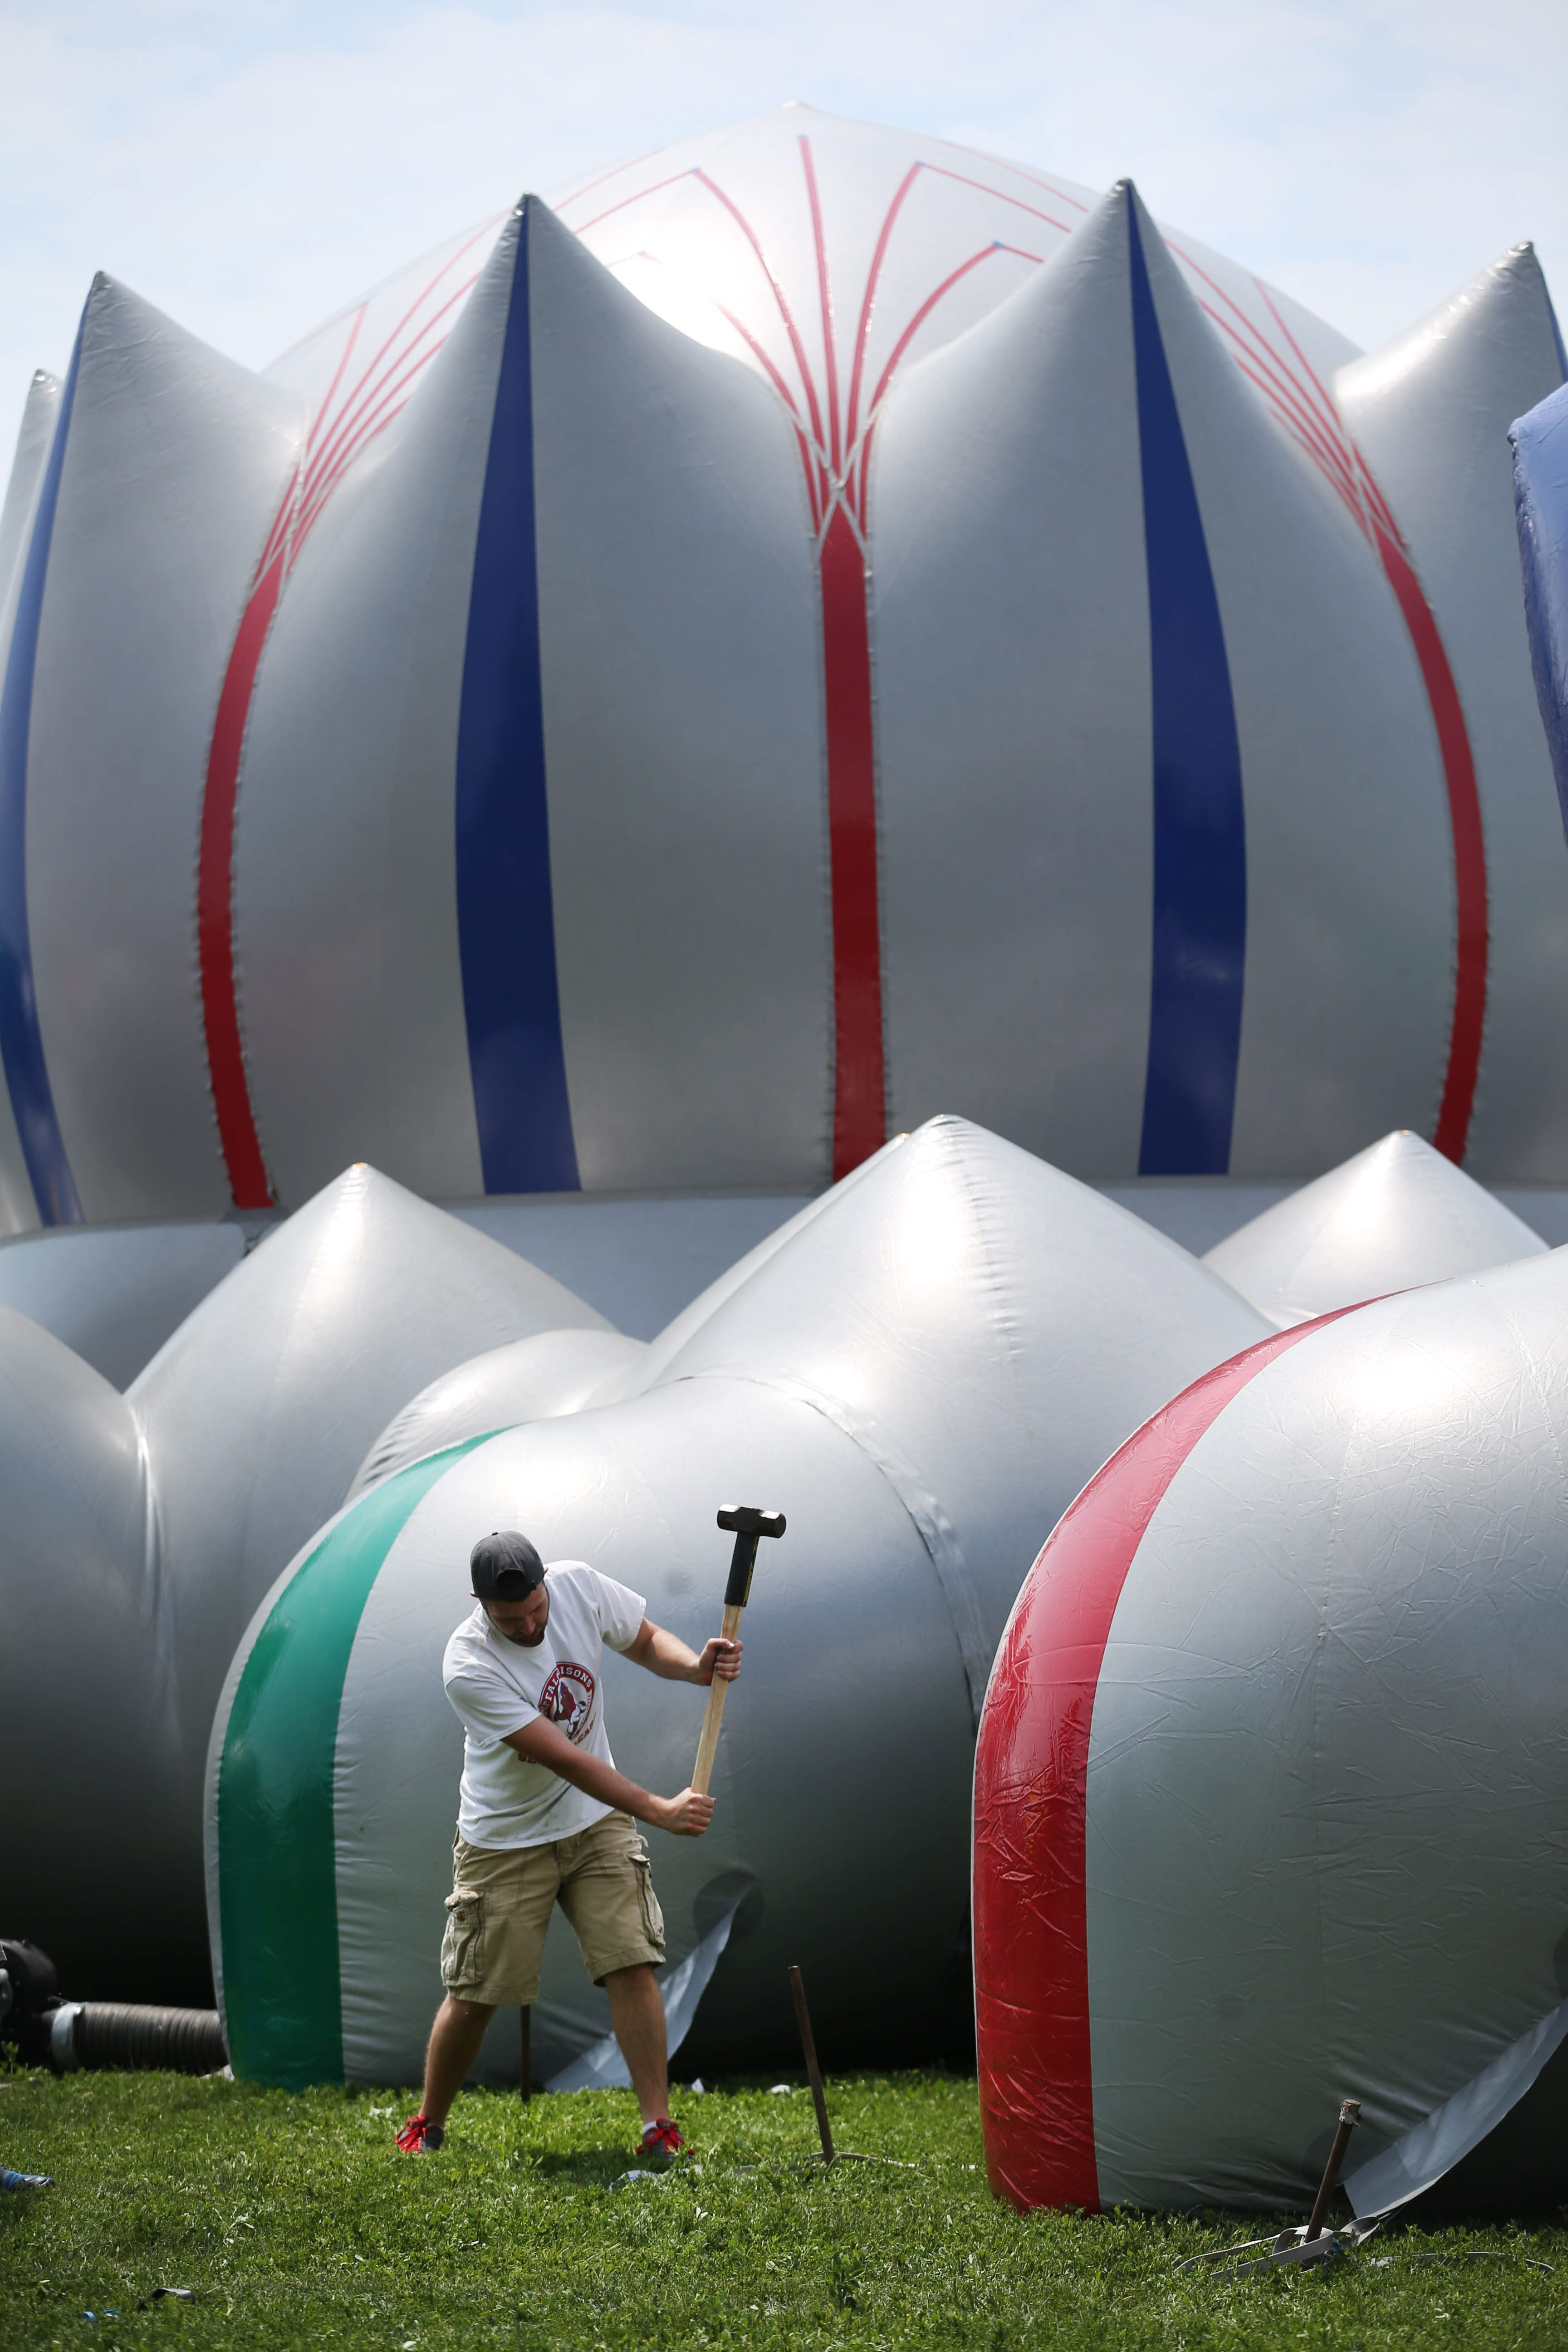 A crew secures Architects of Air's luminarium with stakes Wednesday at Wilkeson Pointe at the Outer Harbor. The walk-in inflatable sculpture will be open Thursday through Monday.